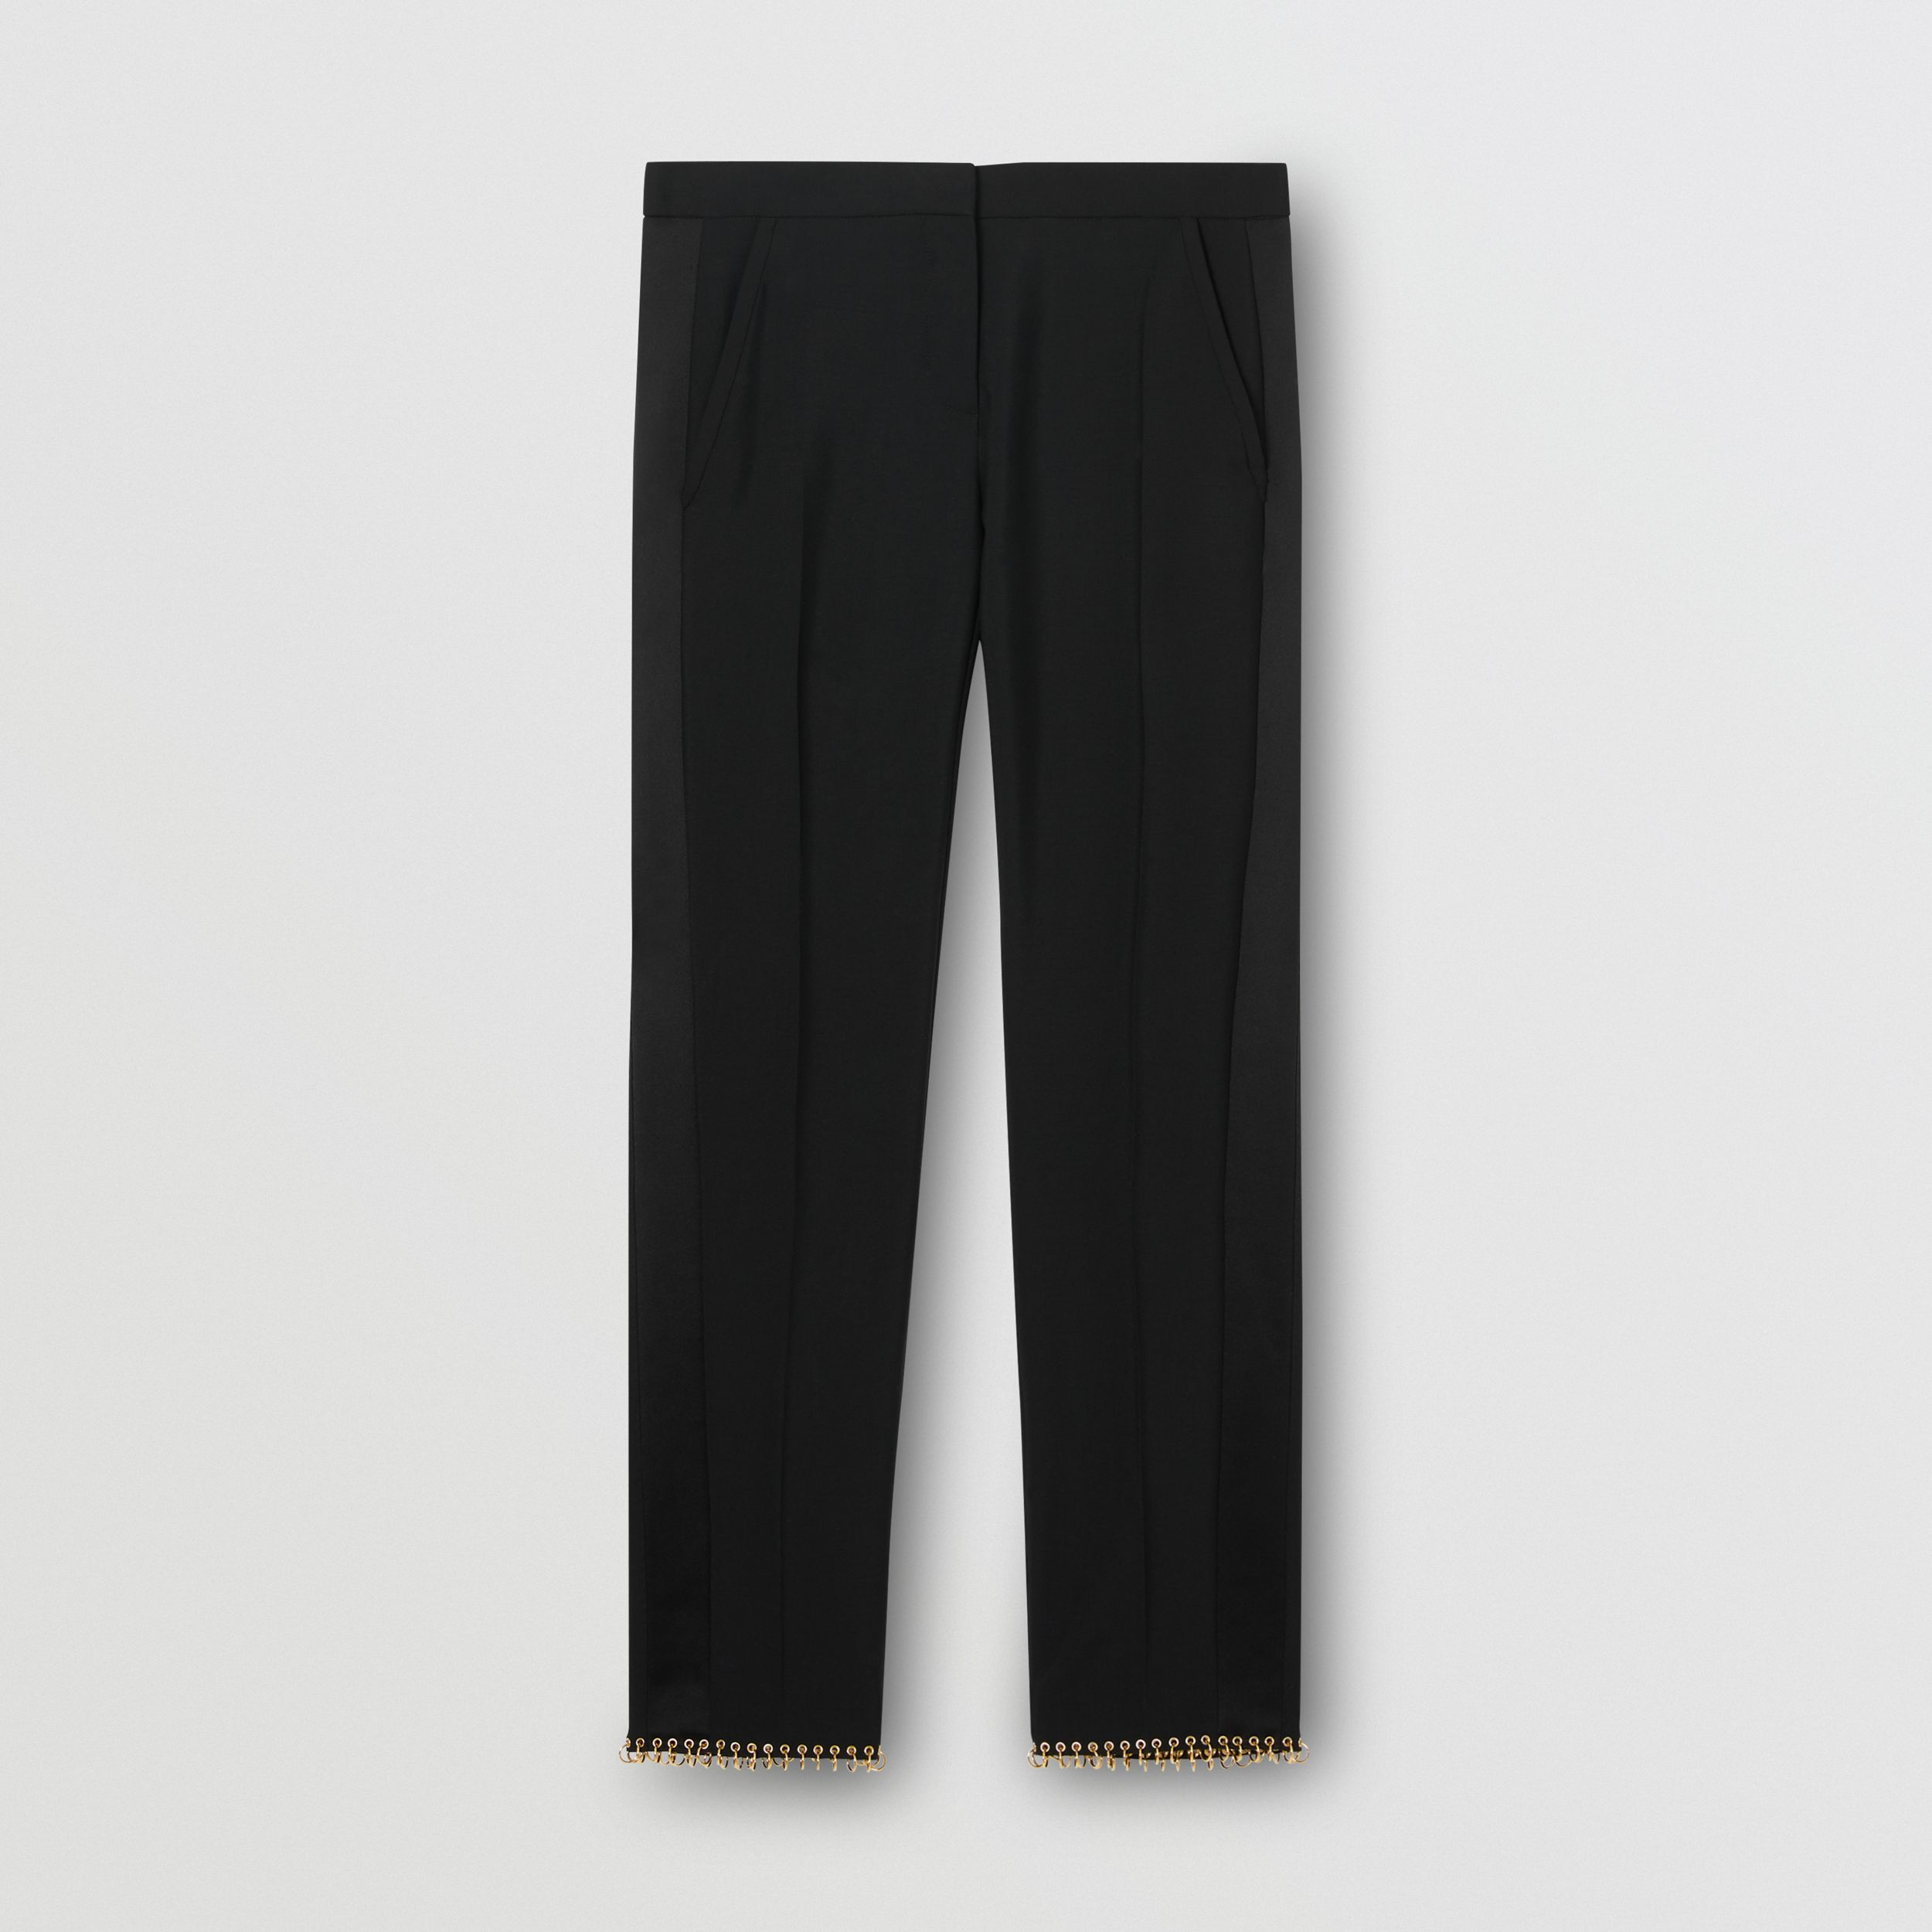 Ring-pierced Wool Tailored Trousers in Black - Women | Burberry - 4